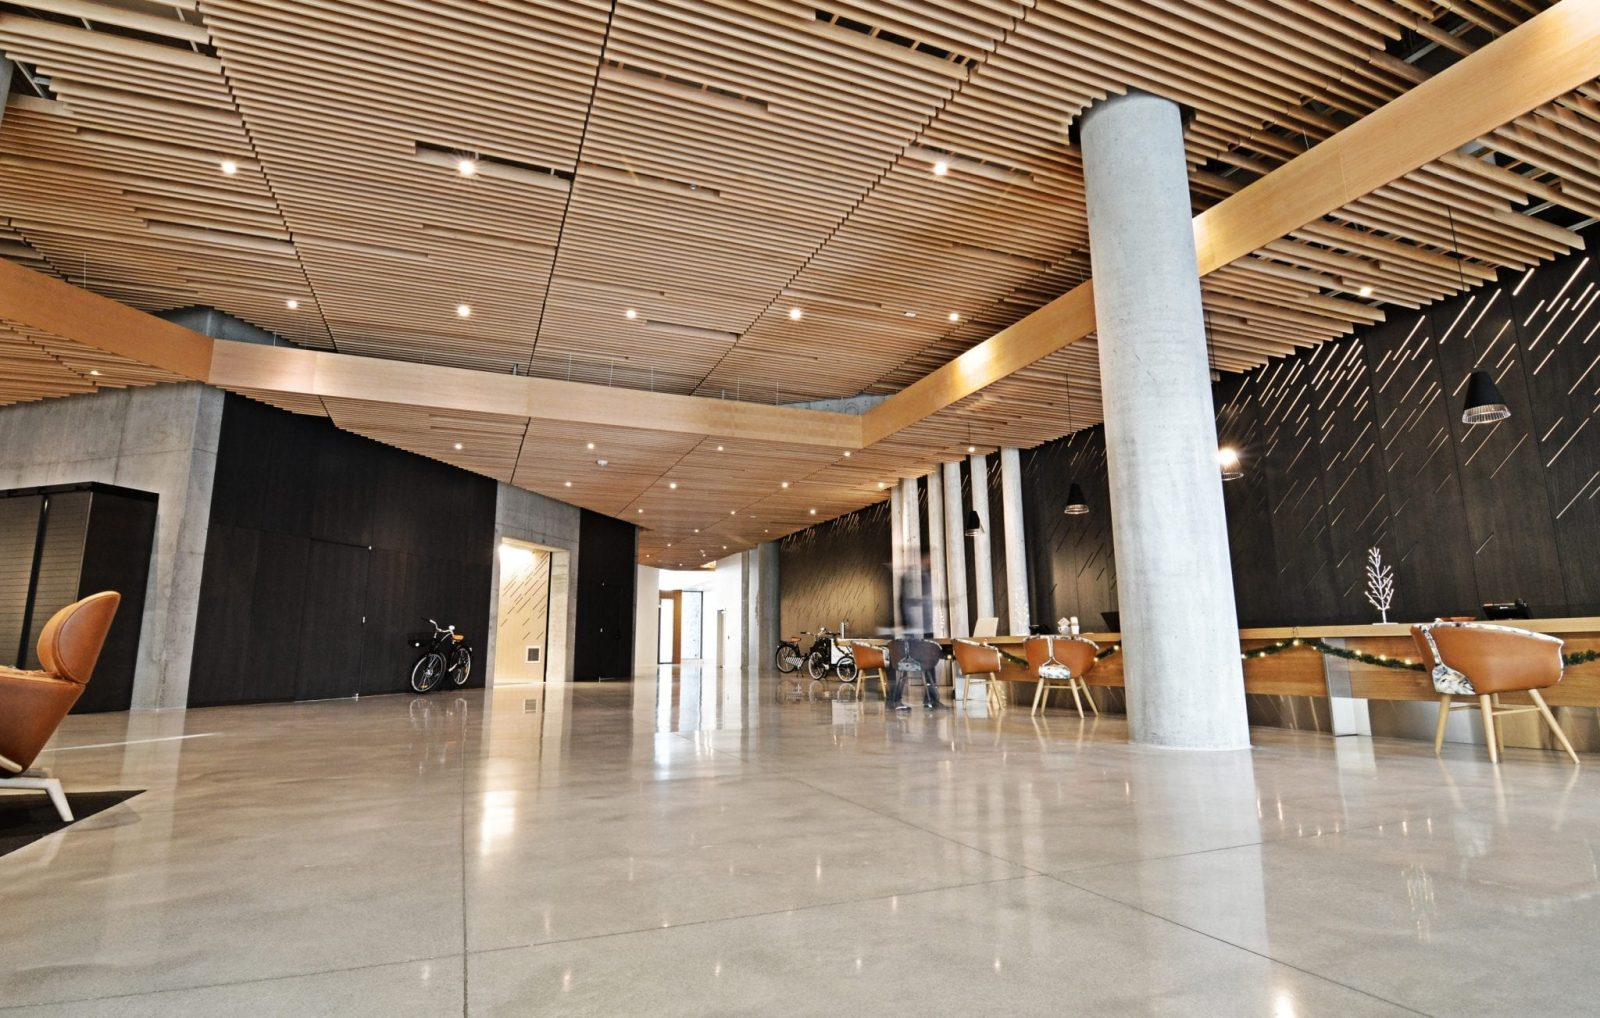 http://Wood%20grille%20ceiling%20for%20high%20end%20apartment%20building%20lobby